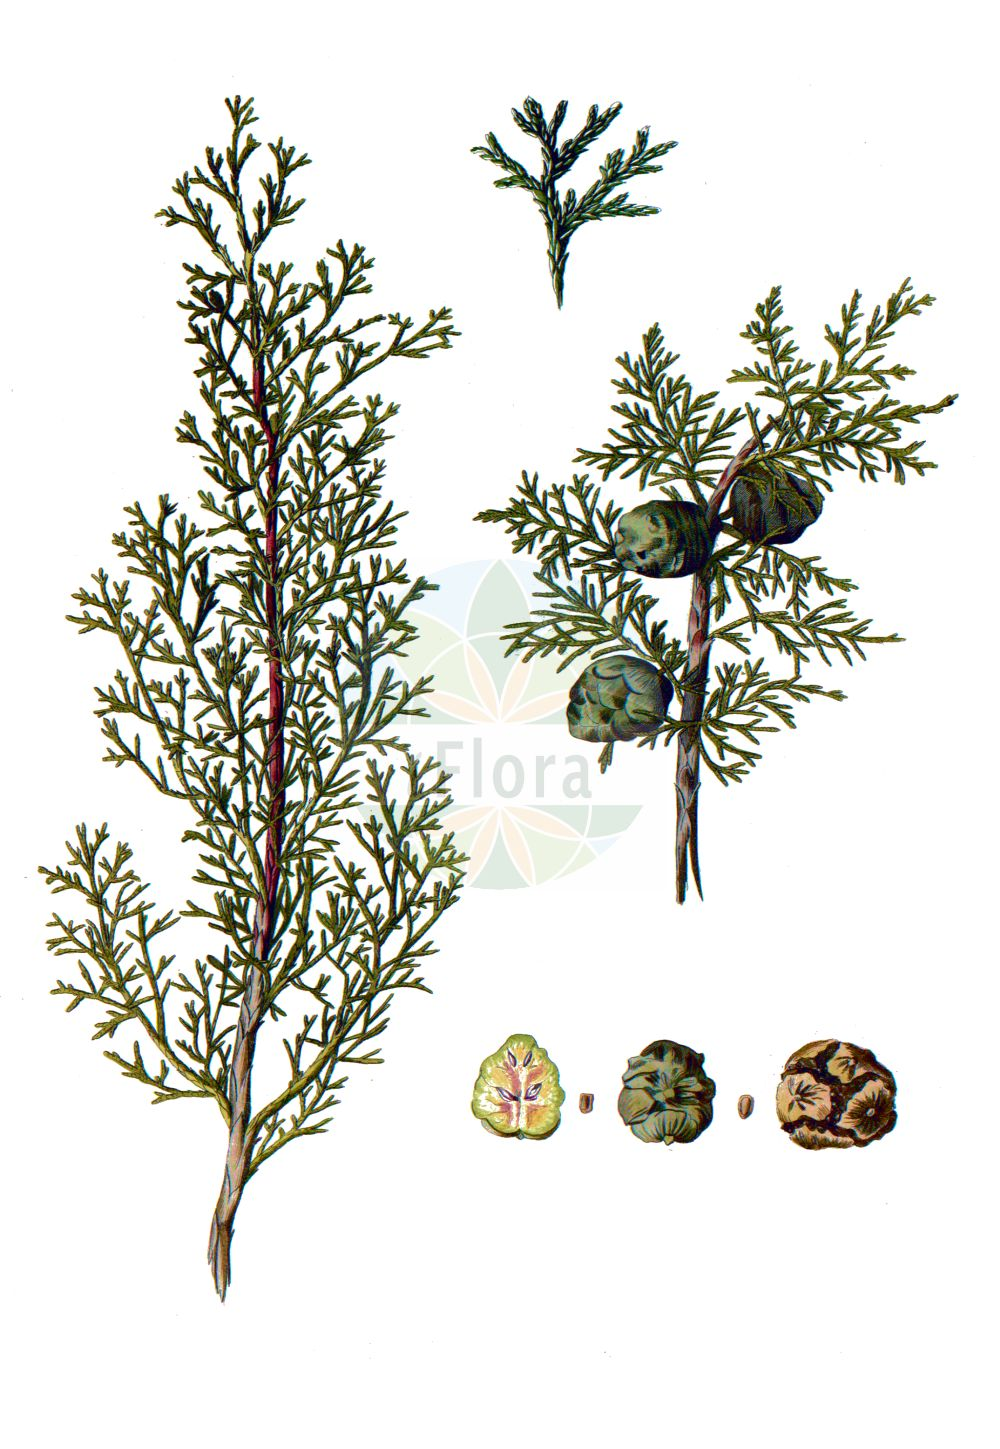 Historische Abbildung von Cupressus sempervirens. Das Bild zeigt Blatt, Bluete, Frucht und Same. ---- Historical Drawing of Cupressus sempervirens.The image is showing leaf, flower, fruit and seed.(Cupressus sempervirens,Cupressus fastigiata,Cupressus horizontalis,Cupressus pyramidalis,Cupressus sempervirens,Cupressus sempervirens var. pyramidalis,Cupressus,Cupressaceae,Zypressengewaechse,Cypress family,Blatt,Bluete,Frucht,Same,leaf,flower,fruit,seed,Pallas (1784))